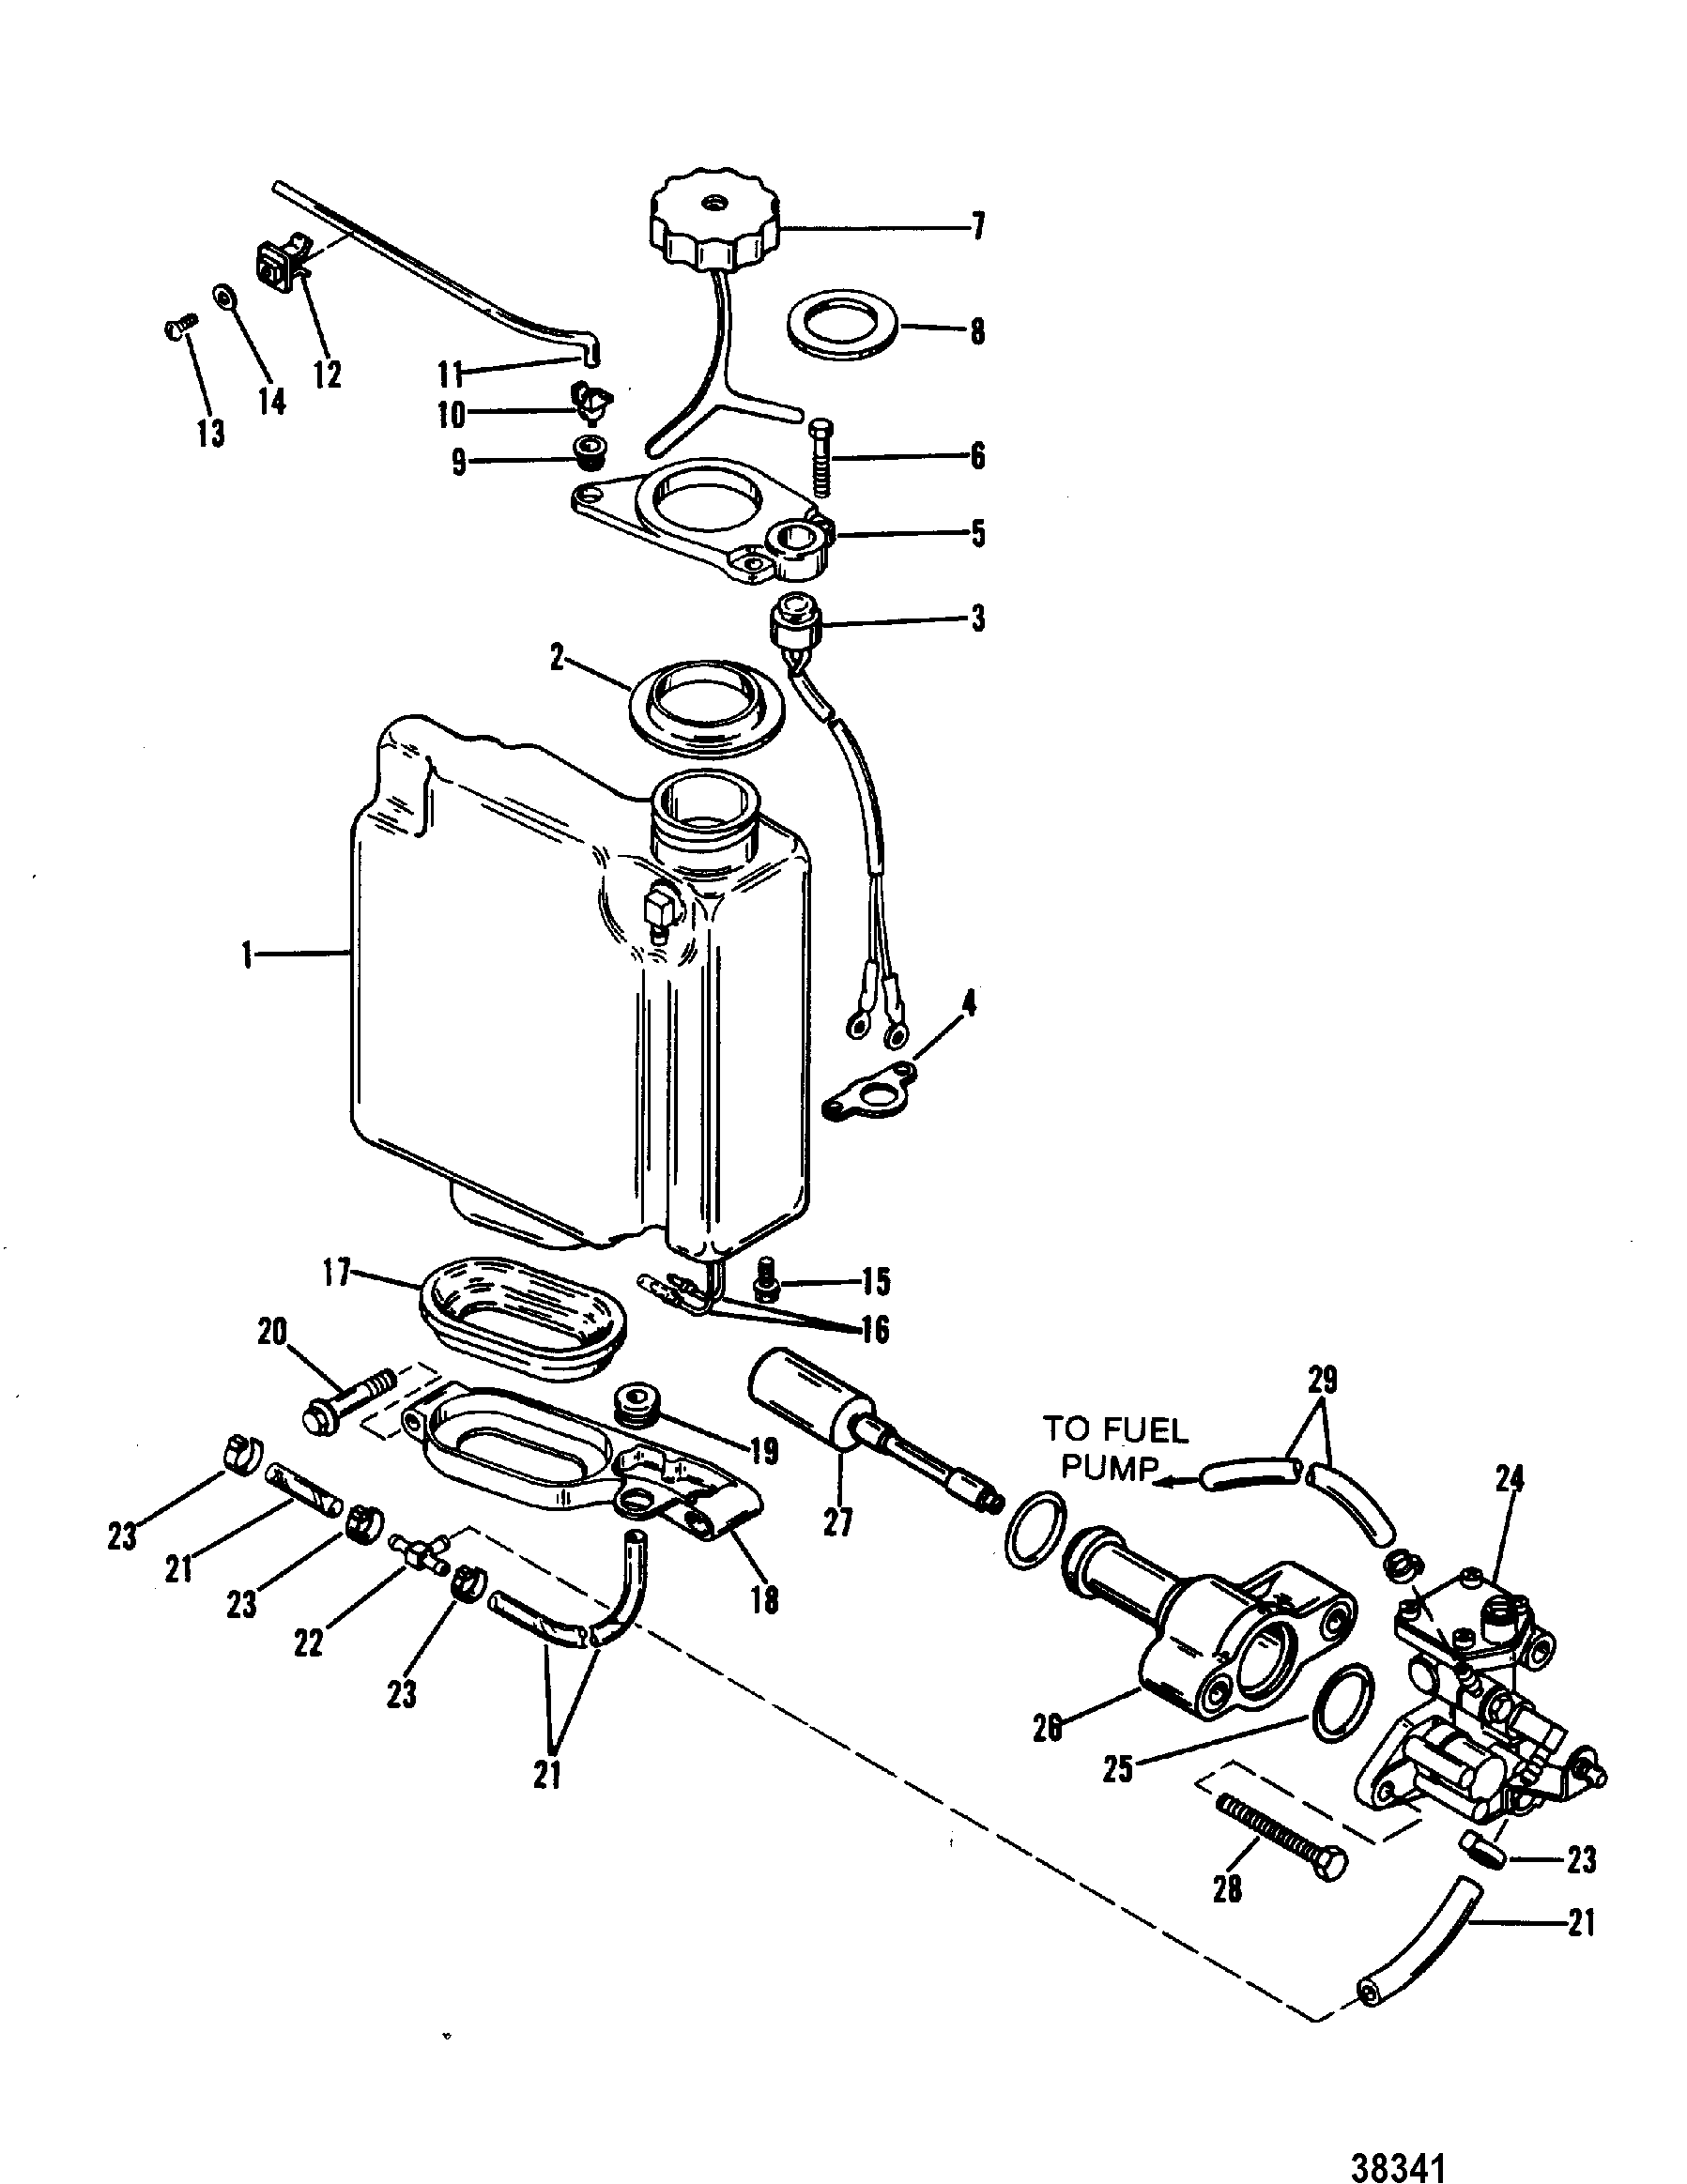 Oil Injection Components For Mariner Mercury 70 75 80 90